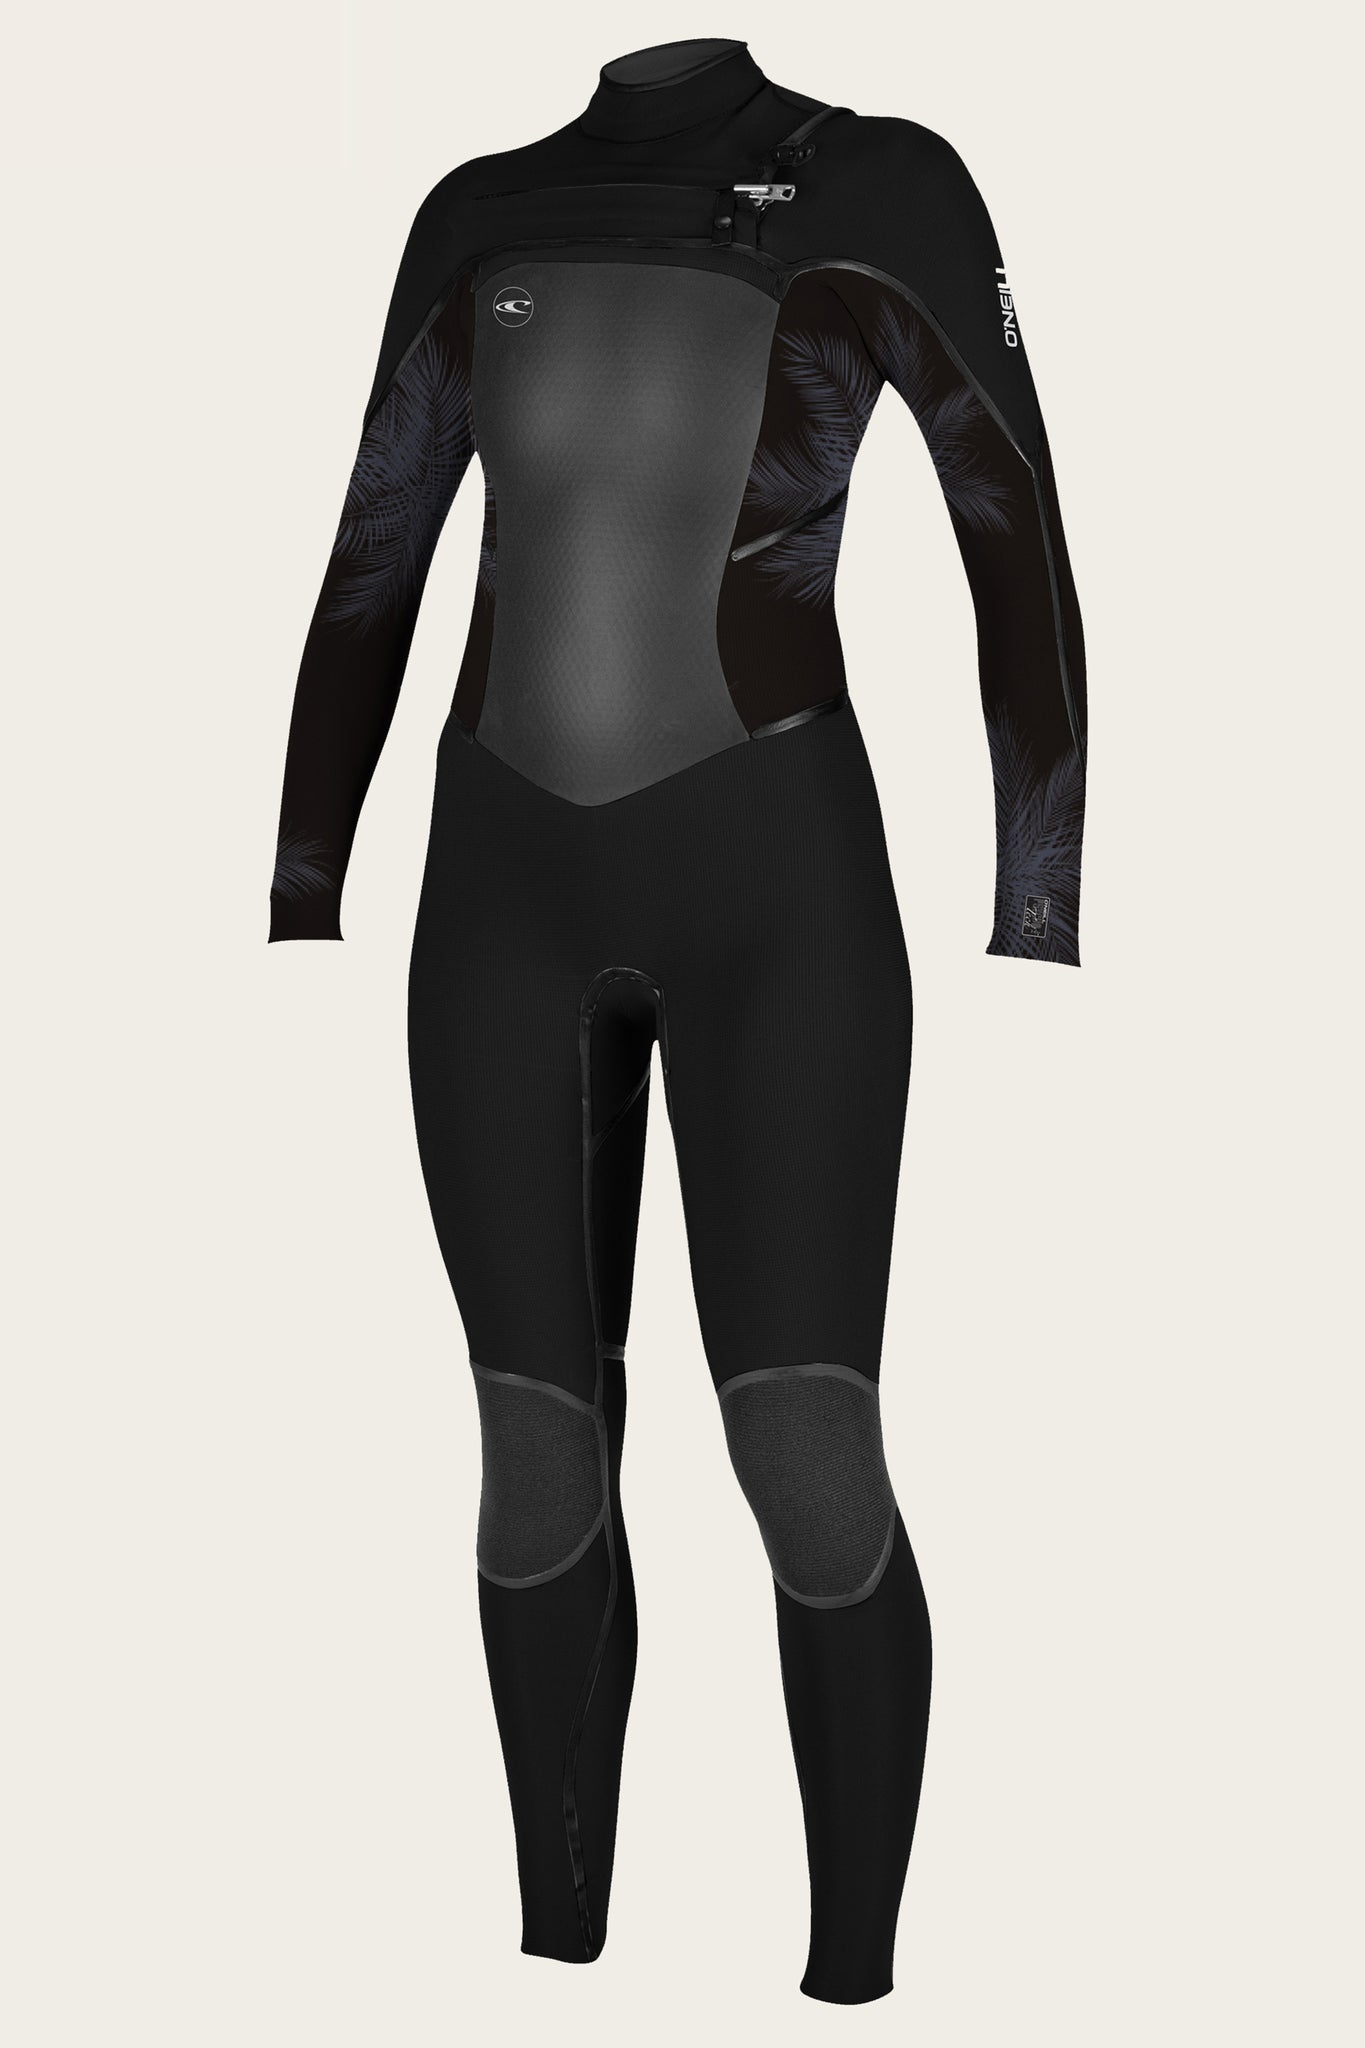 Women'S Psycho Tech 4/3Mm Chest Zip Full Wetsuit - Blk/Hrbrmst/Blk | O'Neill